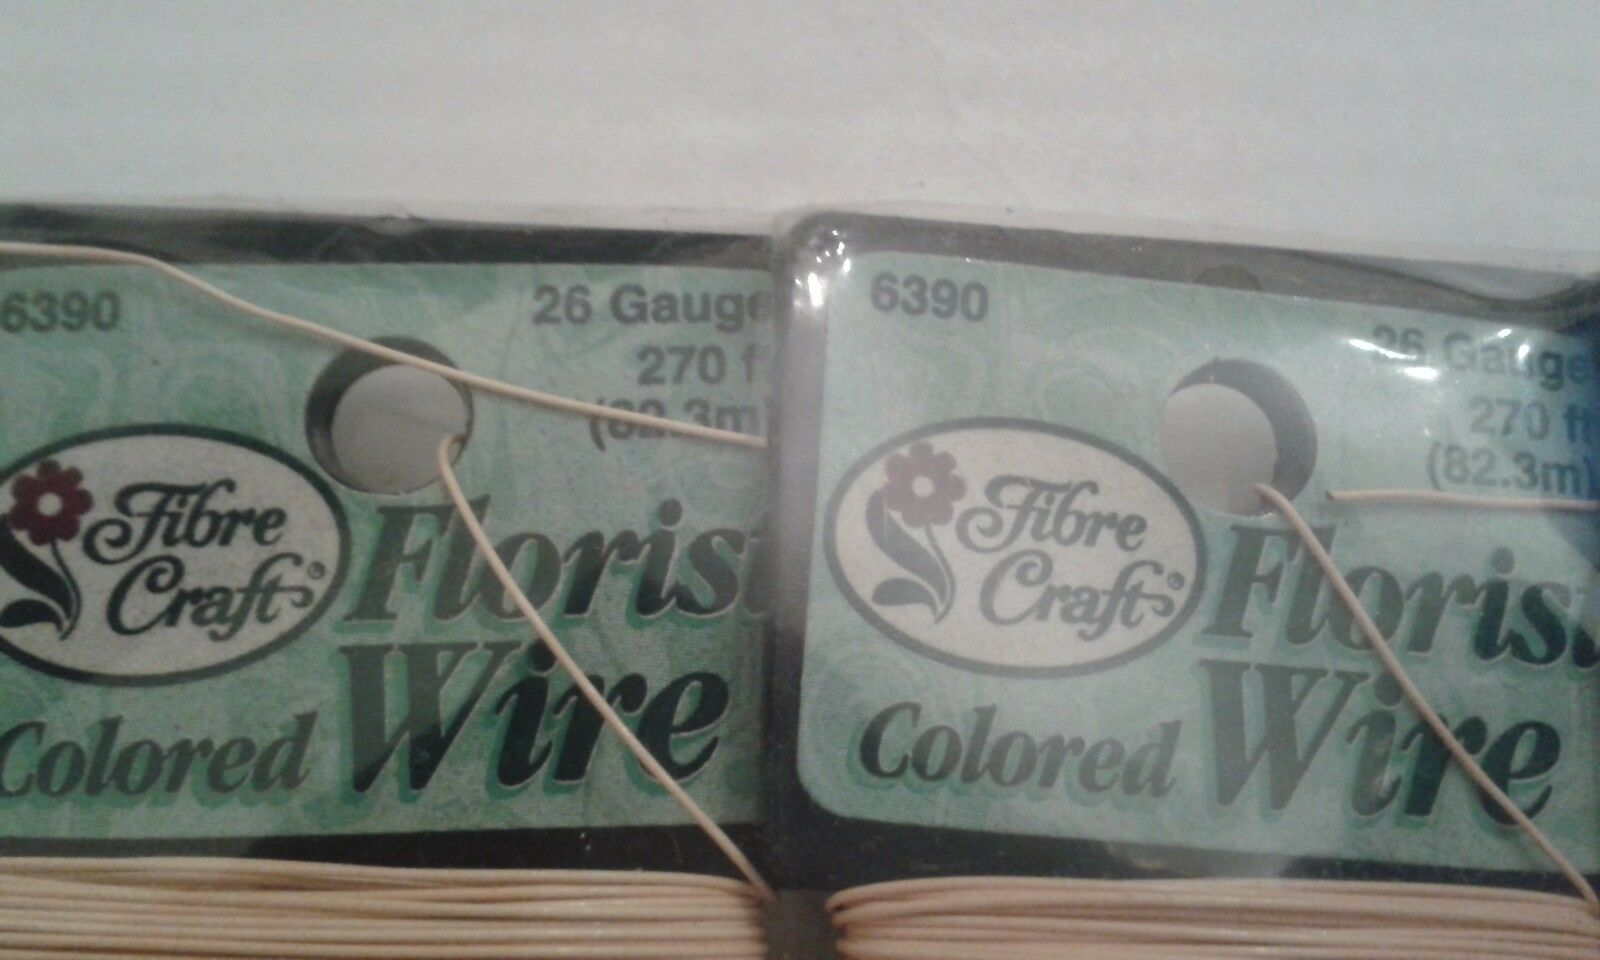 FIBRE CRAFT FLORIST WIRE 26 GAUGE 270ft #6390 COLORED PACK of 3 new ...